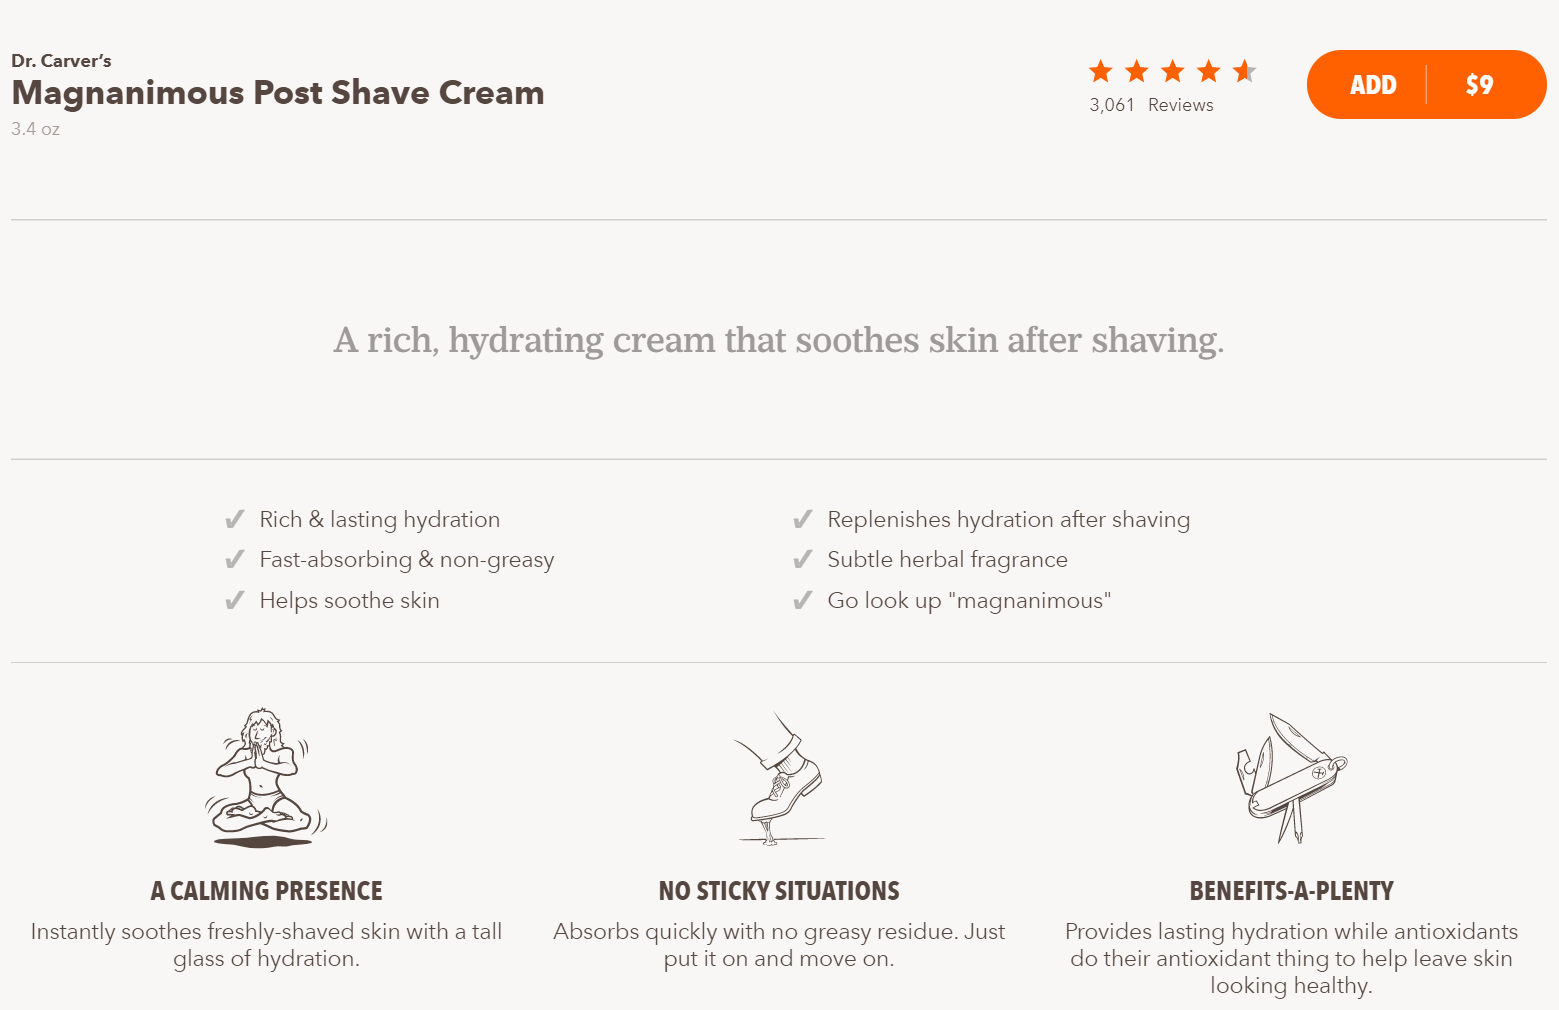 product page by Dollar Shave Club